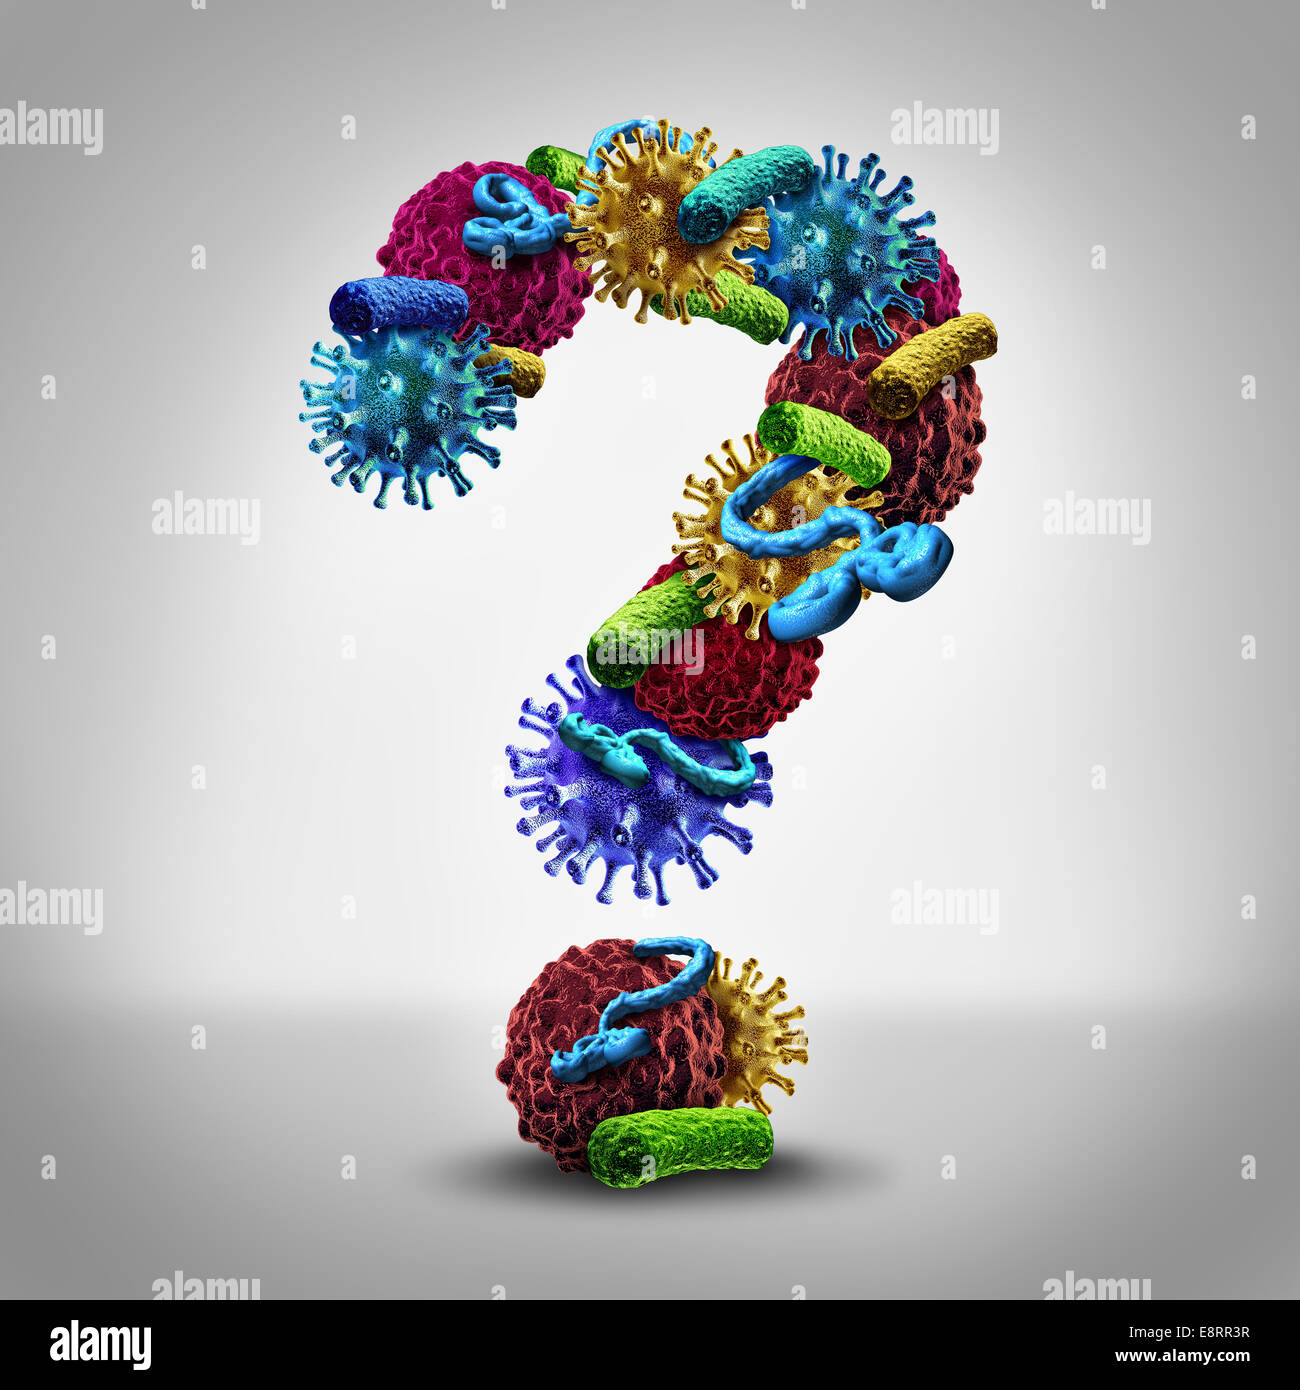 Disease Questions Medical Concept As A Group Of Cancer